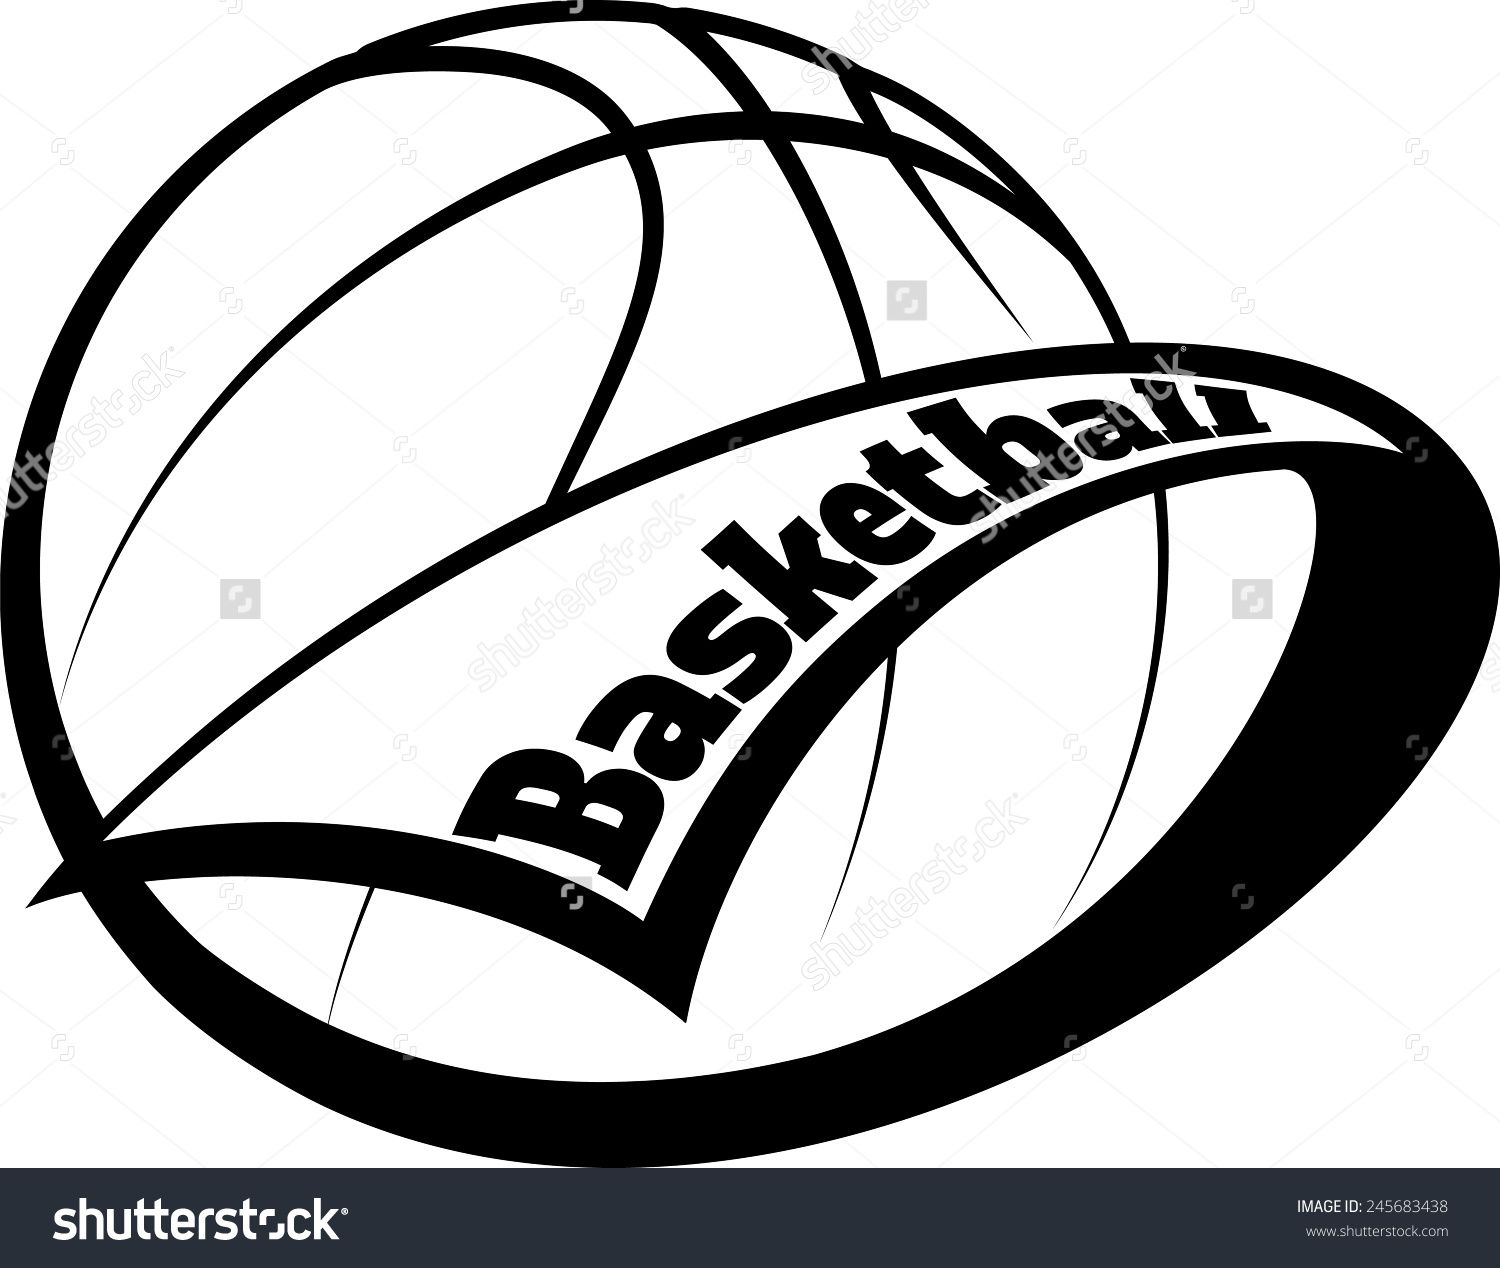 Stylized basketball with a pennant swooping around it and the word stylized basketball with a pennant swooping around it and the word basketball inside the pennant biocorpaavc Choice Image